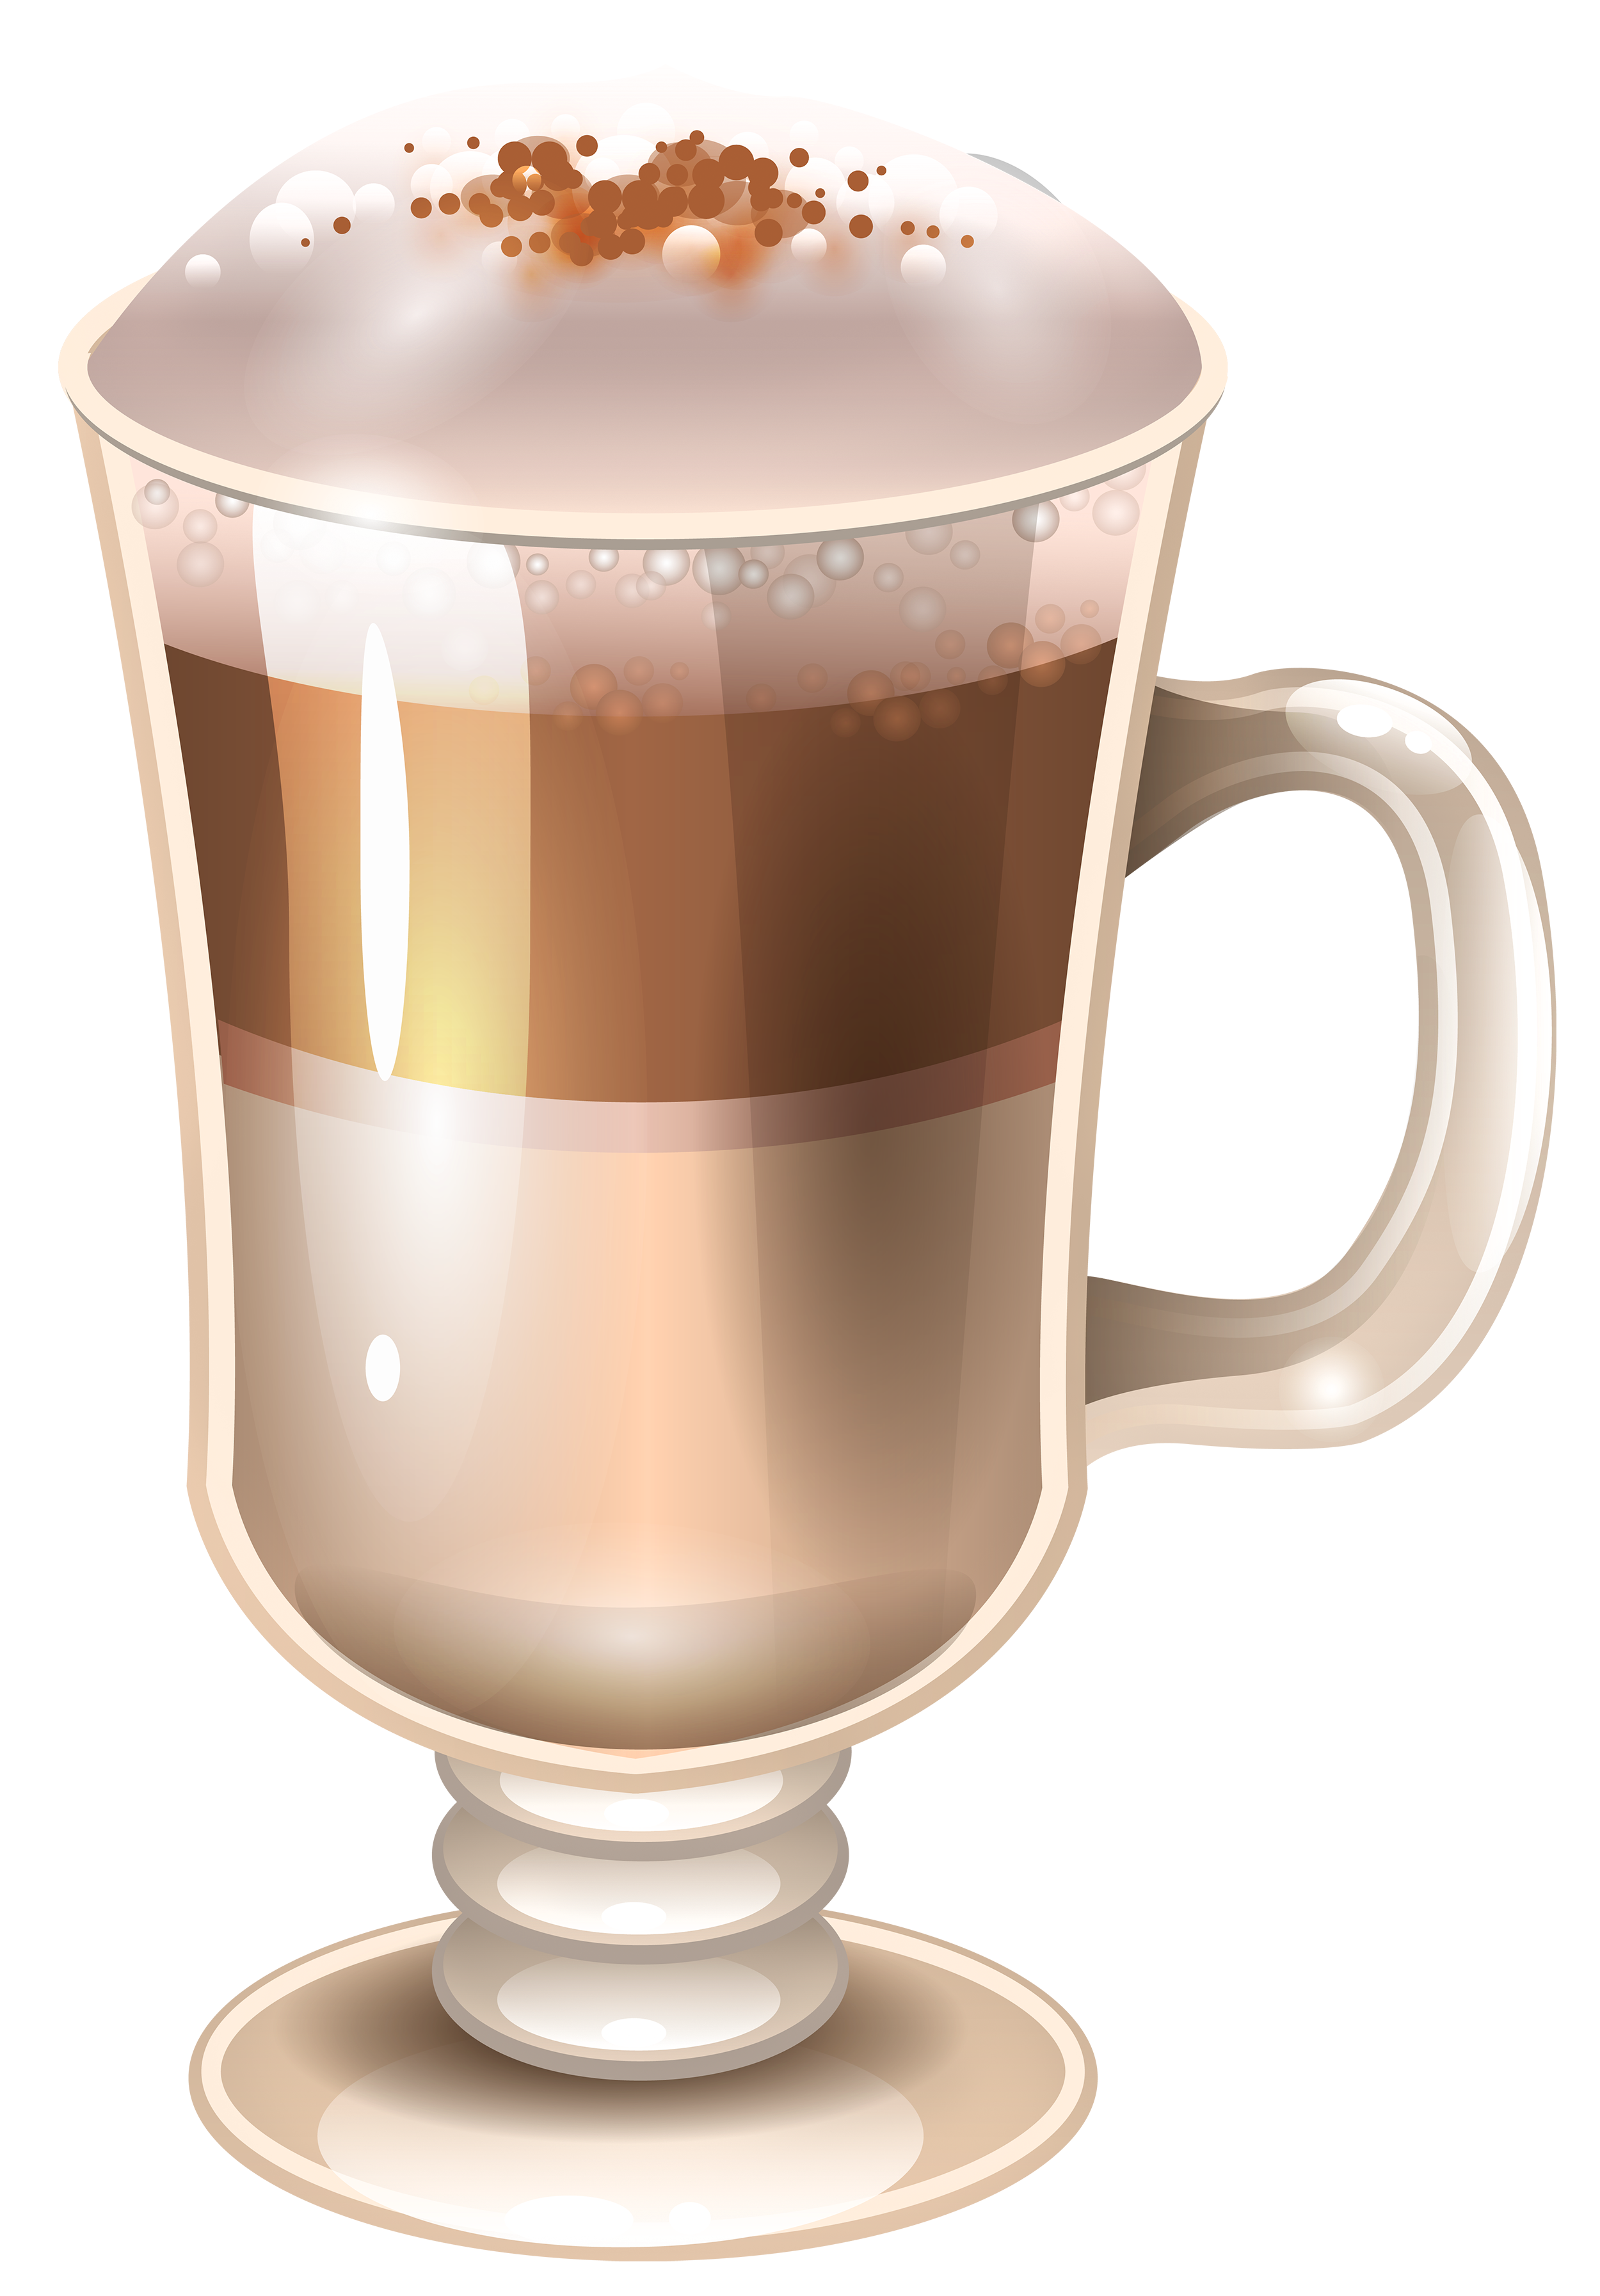 Clip art cliparts for. Clipart coffee cappuccino